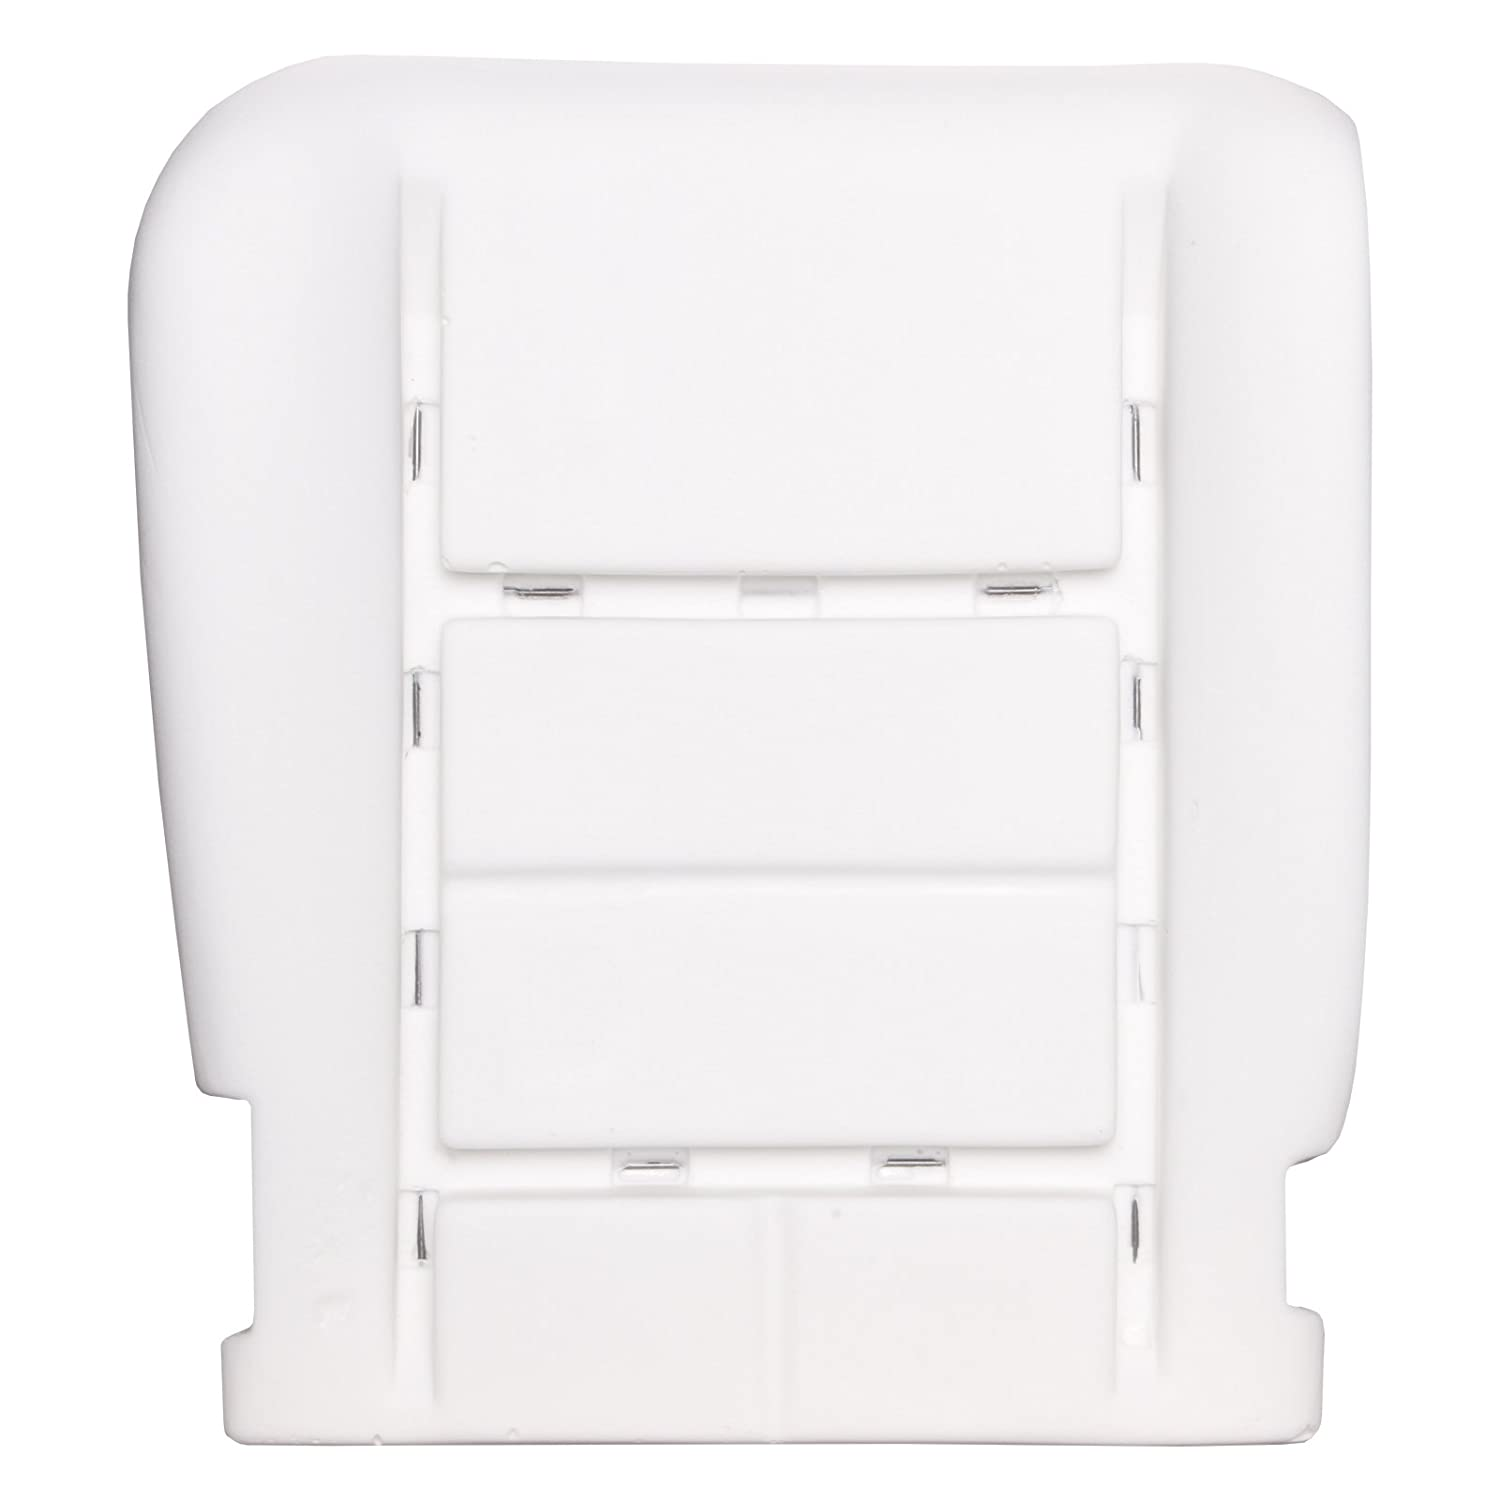 The Seat Shop Durofoam Replacement Driver Bottom Foam Seat Cushion (Compatible with 2002-2010 Ford F250/F350 Crew Cab (2002-2005 Excursion))